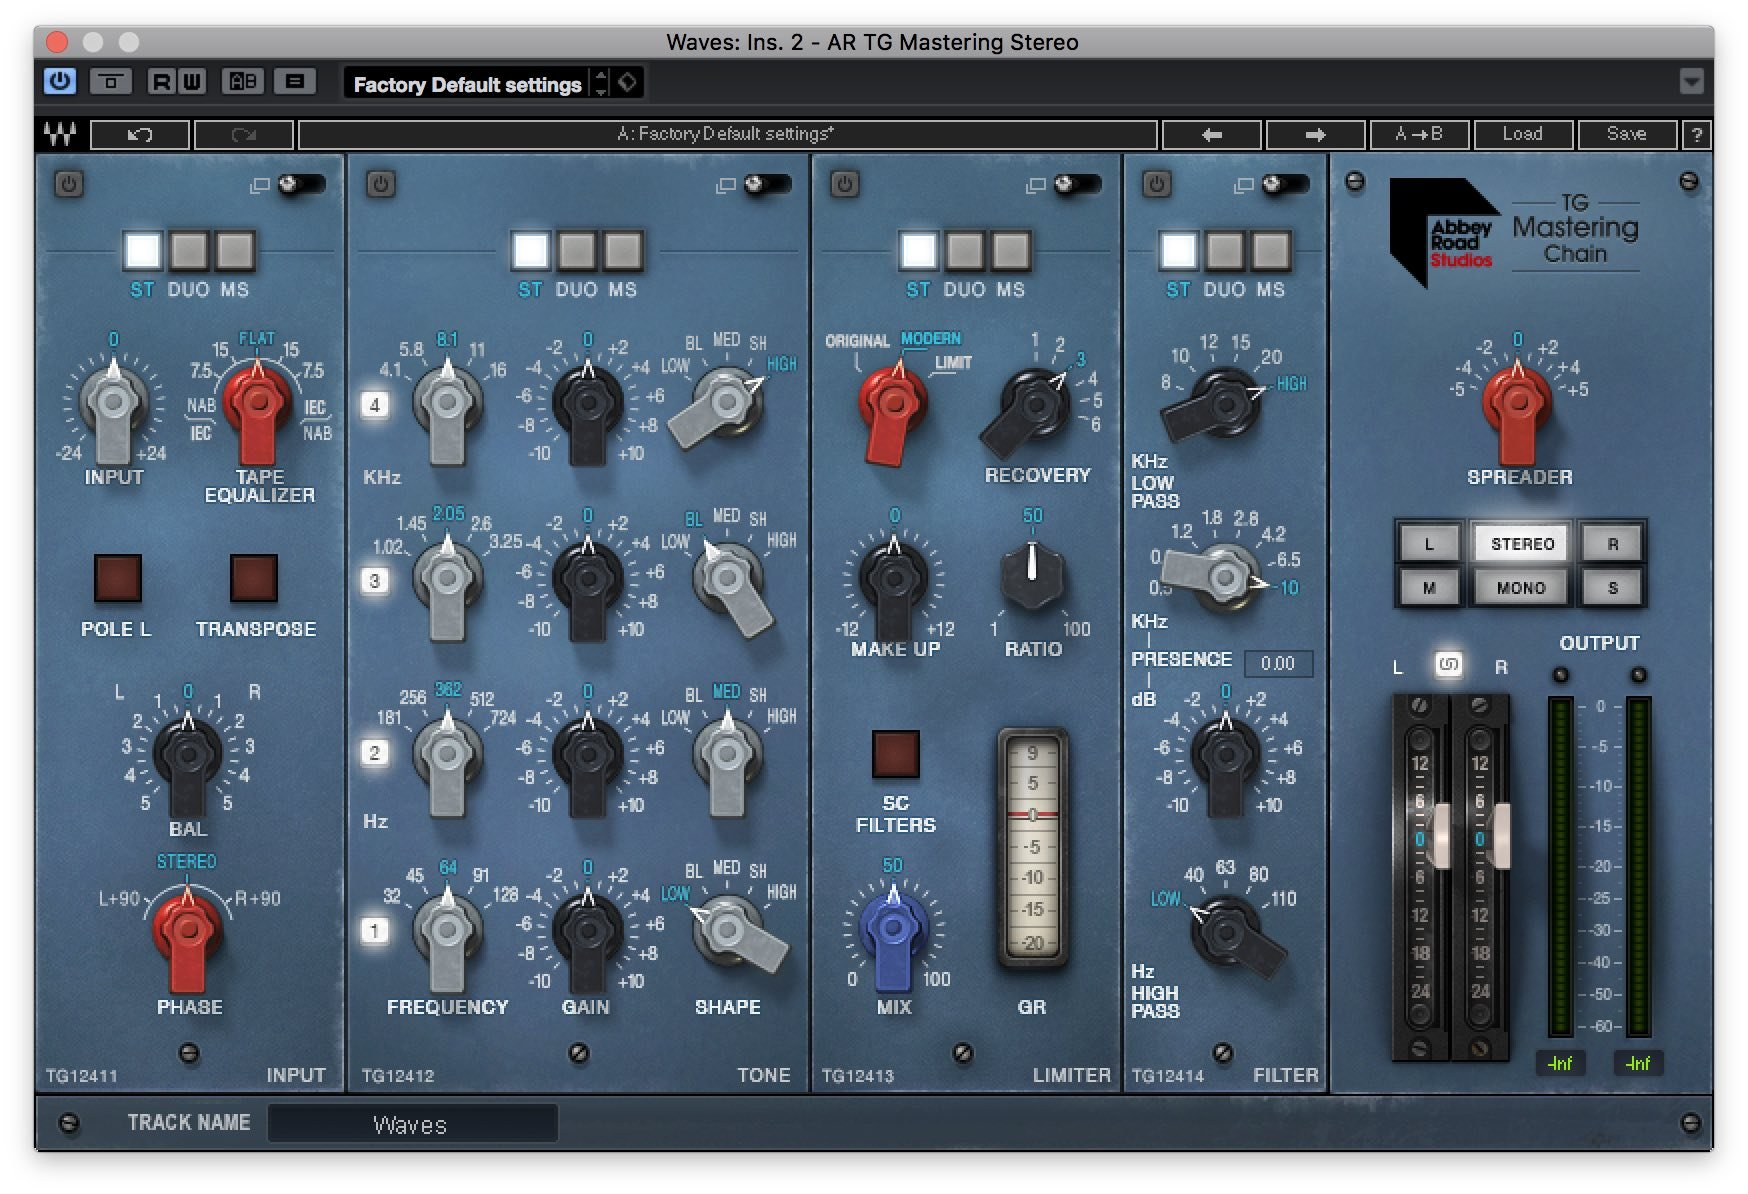 Waves - Abbey Road TG Mastering Chain